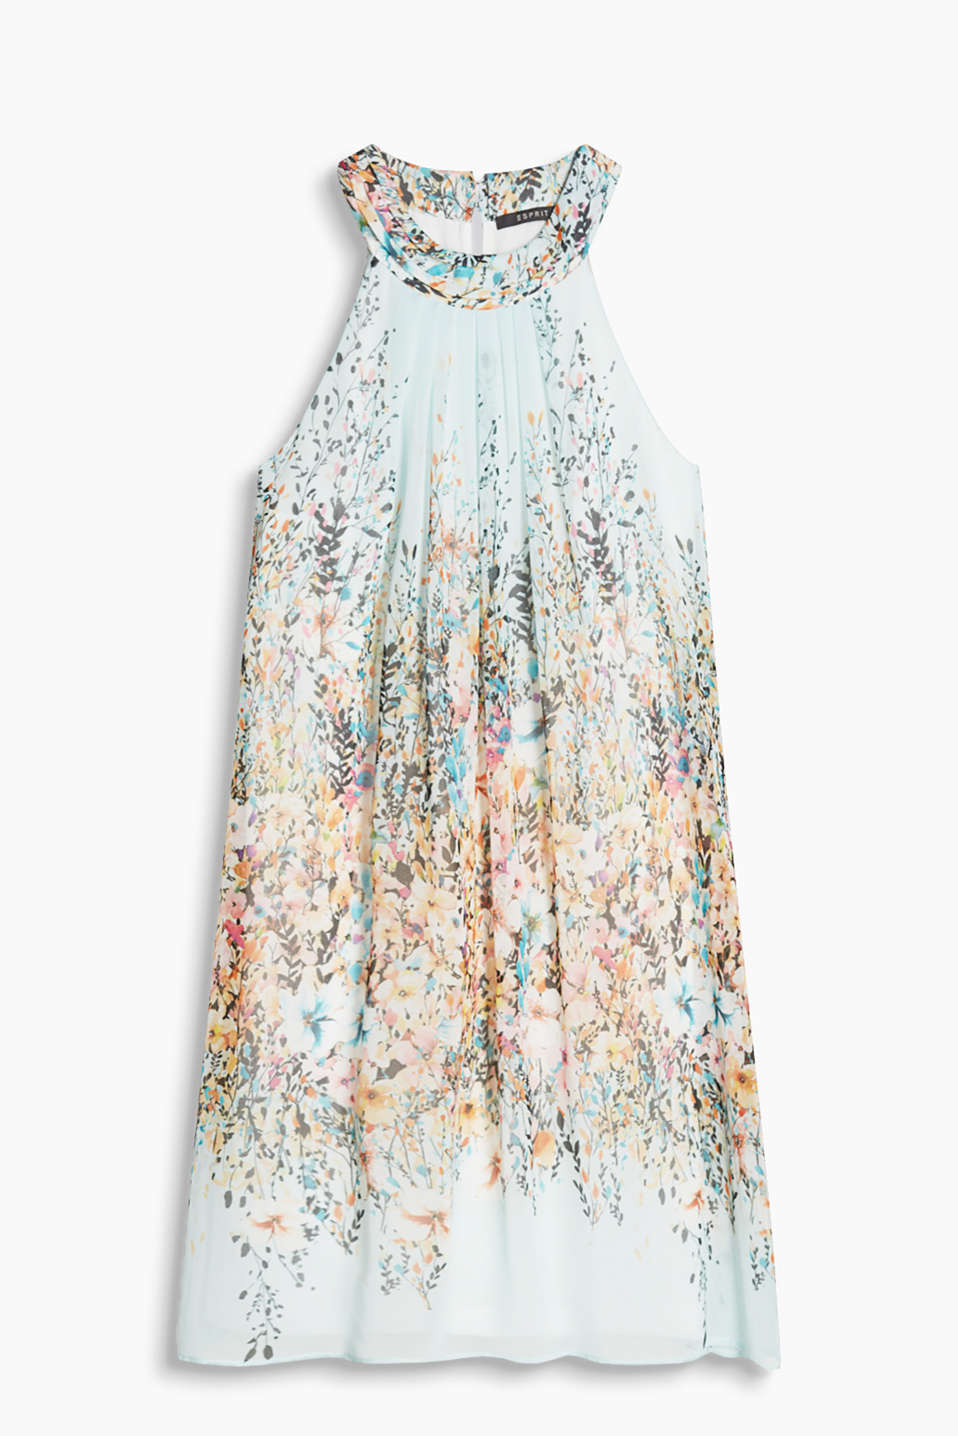 Delicate chiffon dress with a floral print and decorative pleating